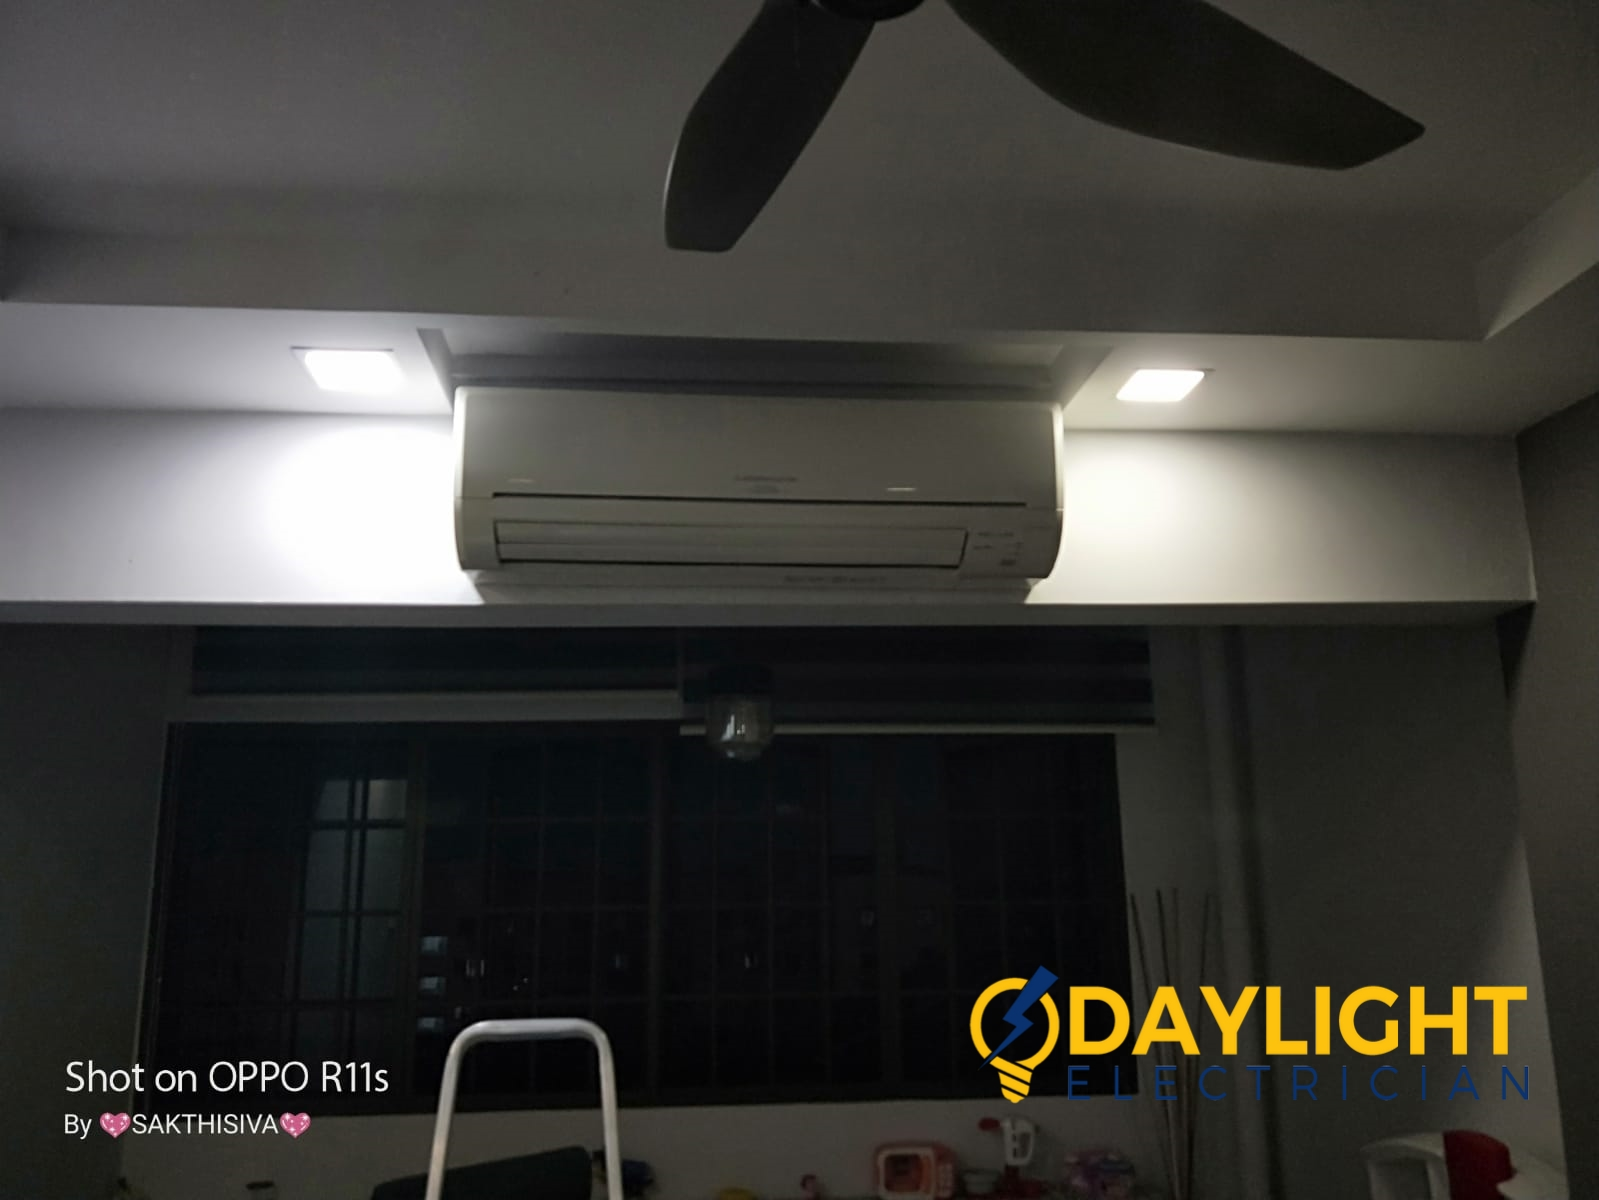 Downlight flickering Singapore HDB Choa Chu Kang Day Light Electrician Singapore (2)_wm